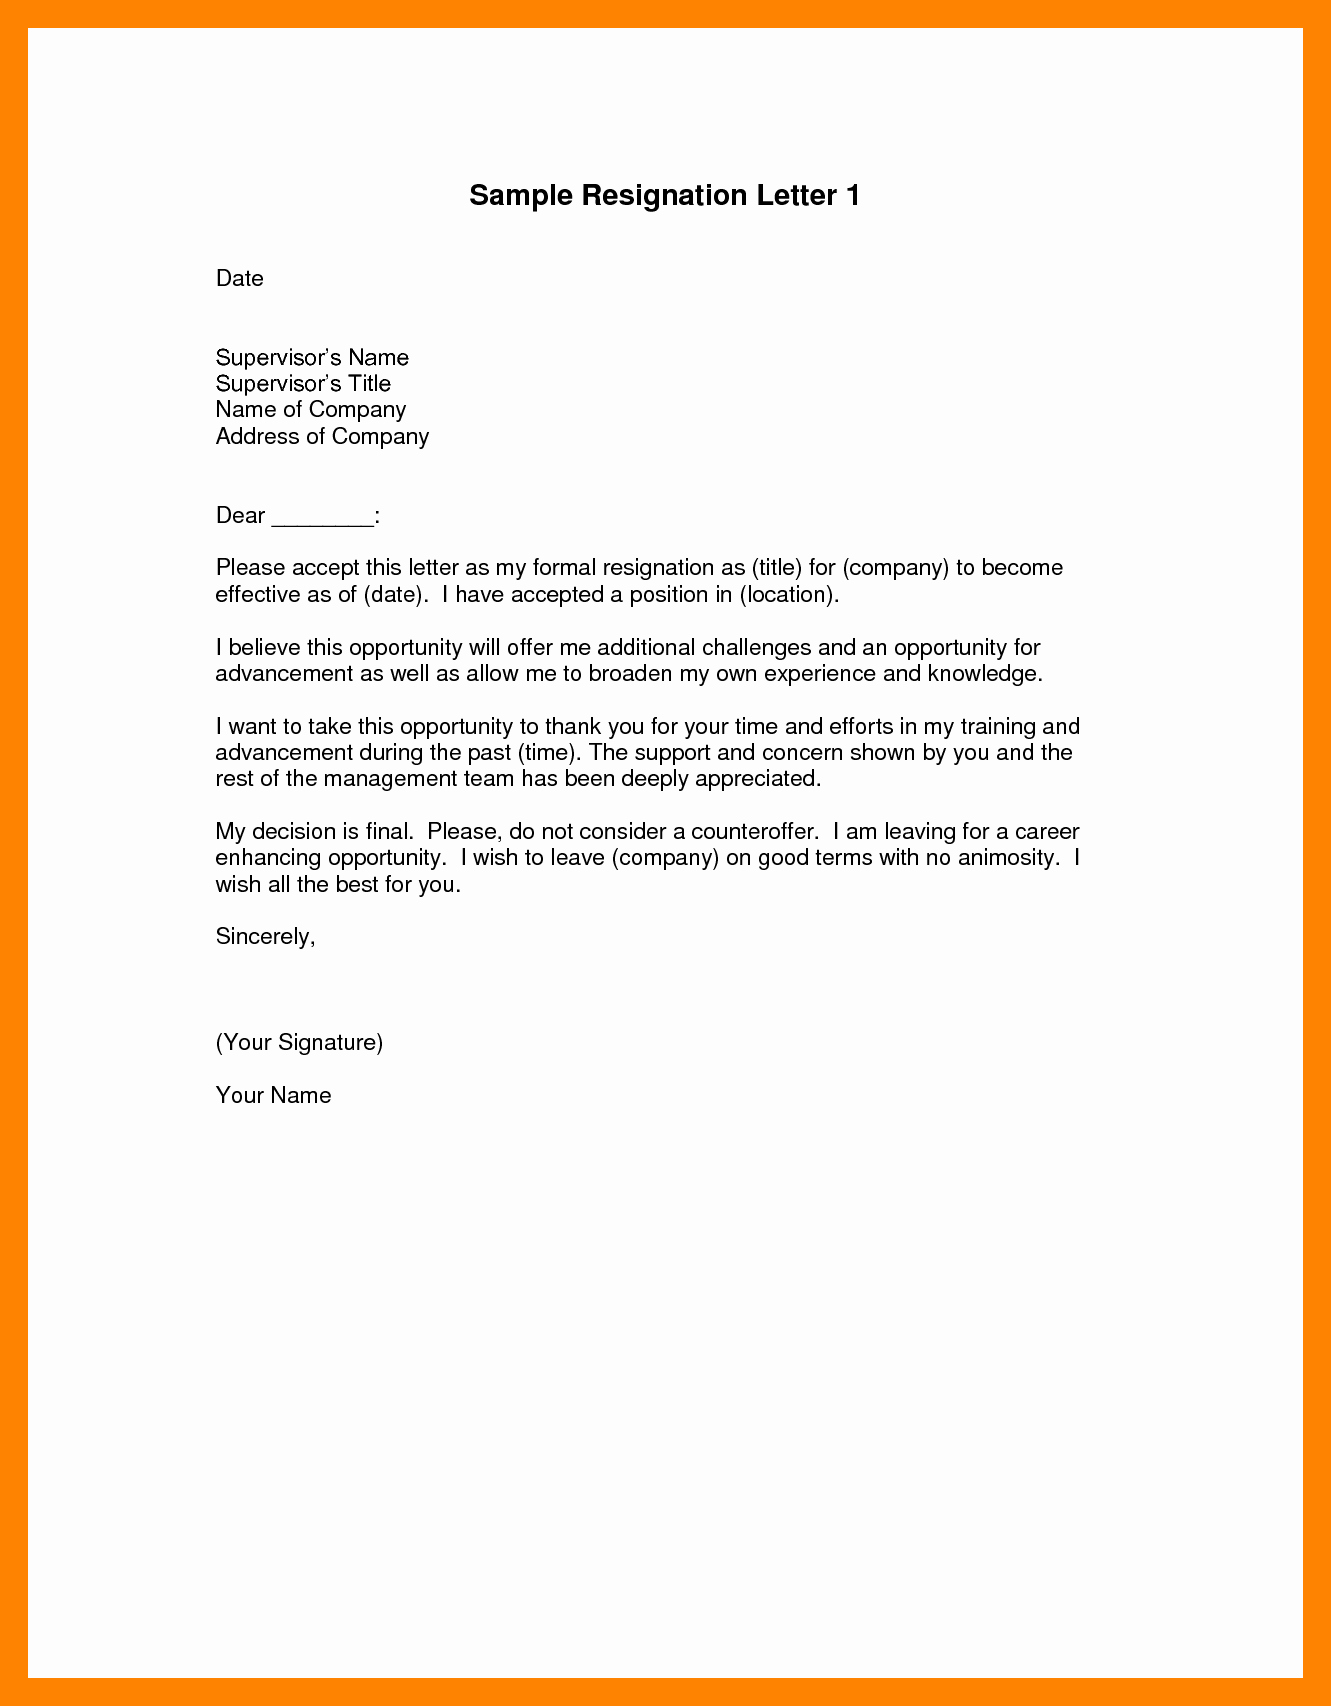 Resignation Letter Effective Immediately Fresh 7 Official Resignation Letter Template